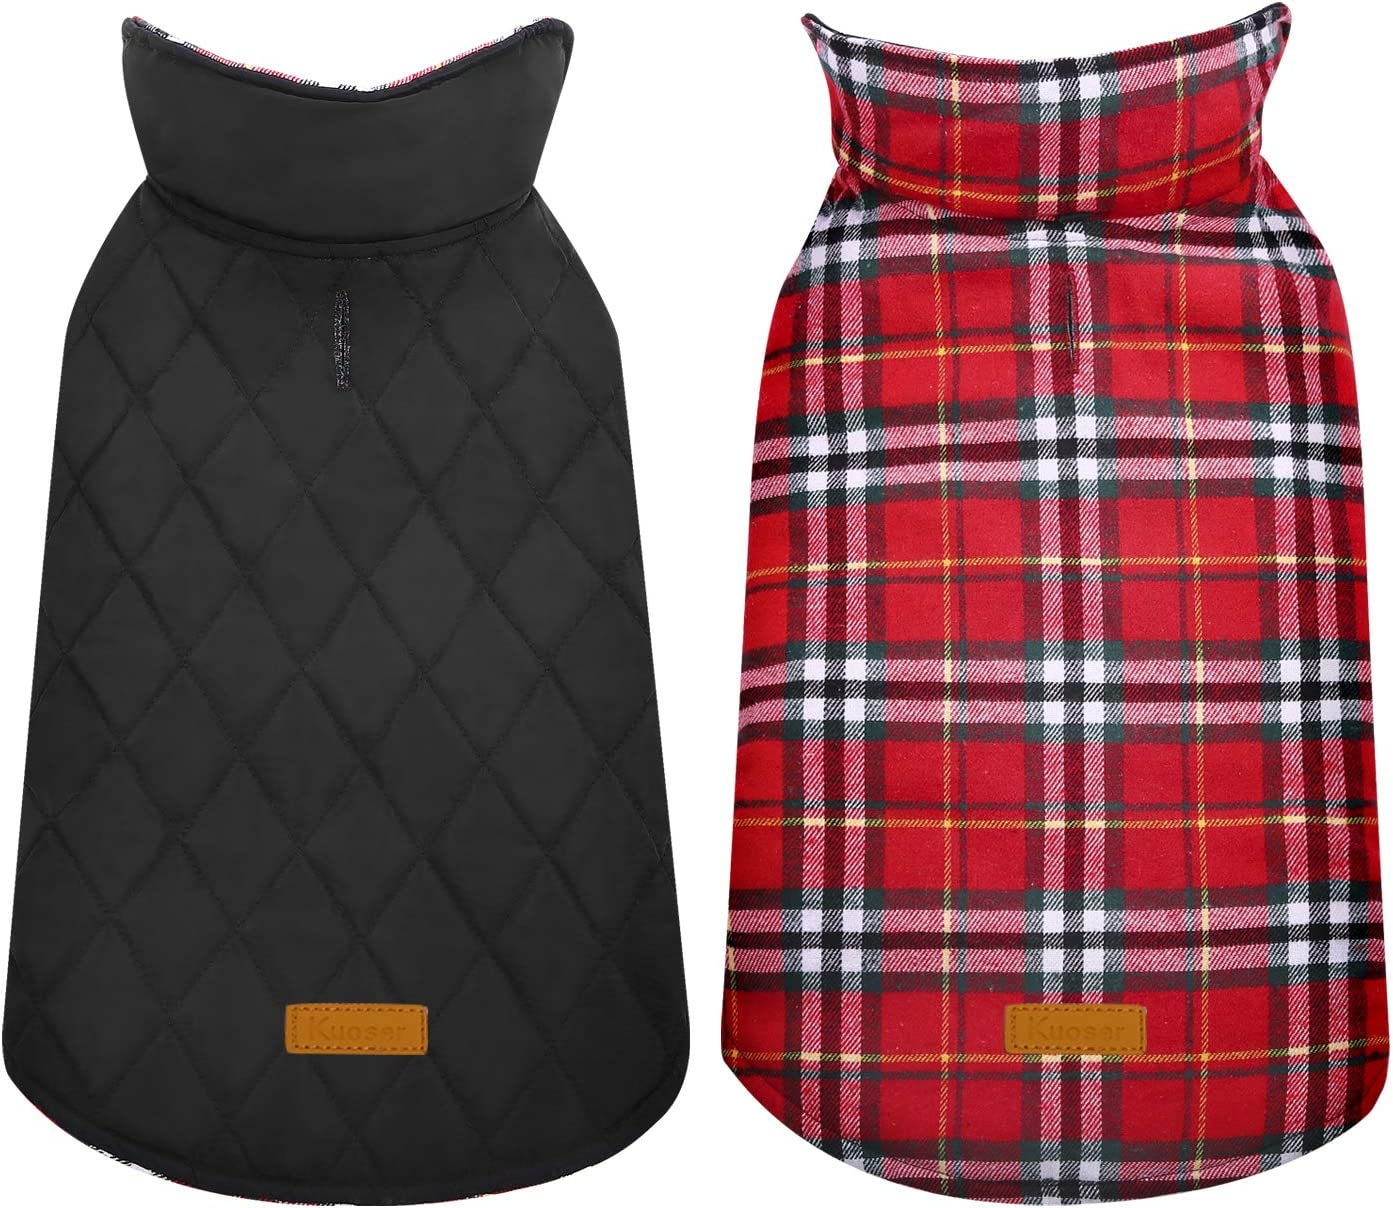 Kuoser Cozy Waterproof Windproof Reversible British Style Plaid Dog Vest Winter Coat Warm Dog Apparel for Cold Weather Dog Jacket for Small Medium Large Dogs with Furry Collar (XS - 3XL)